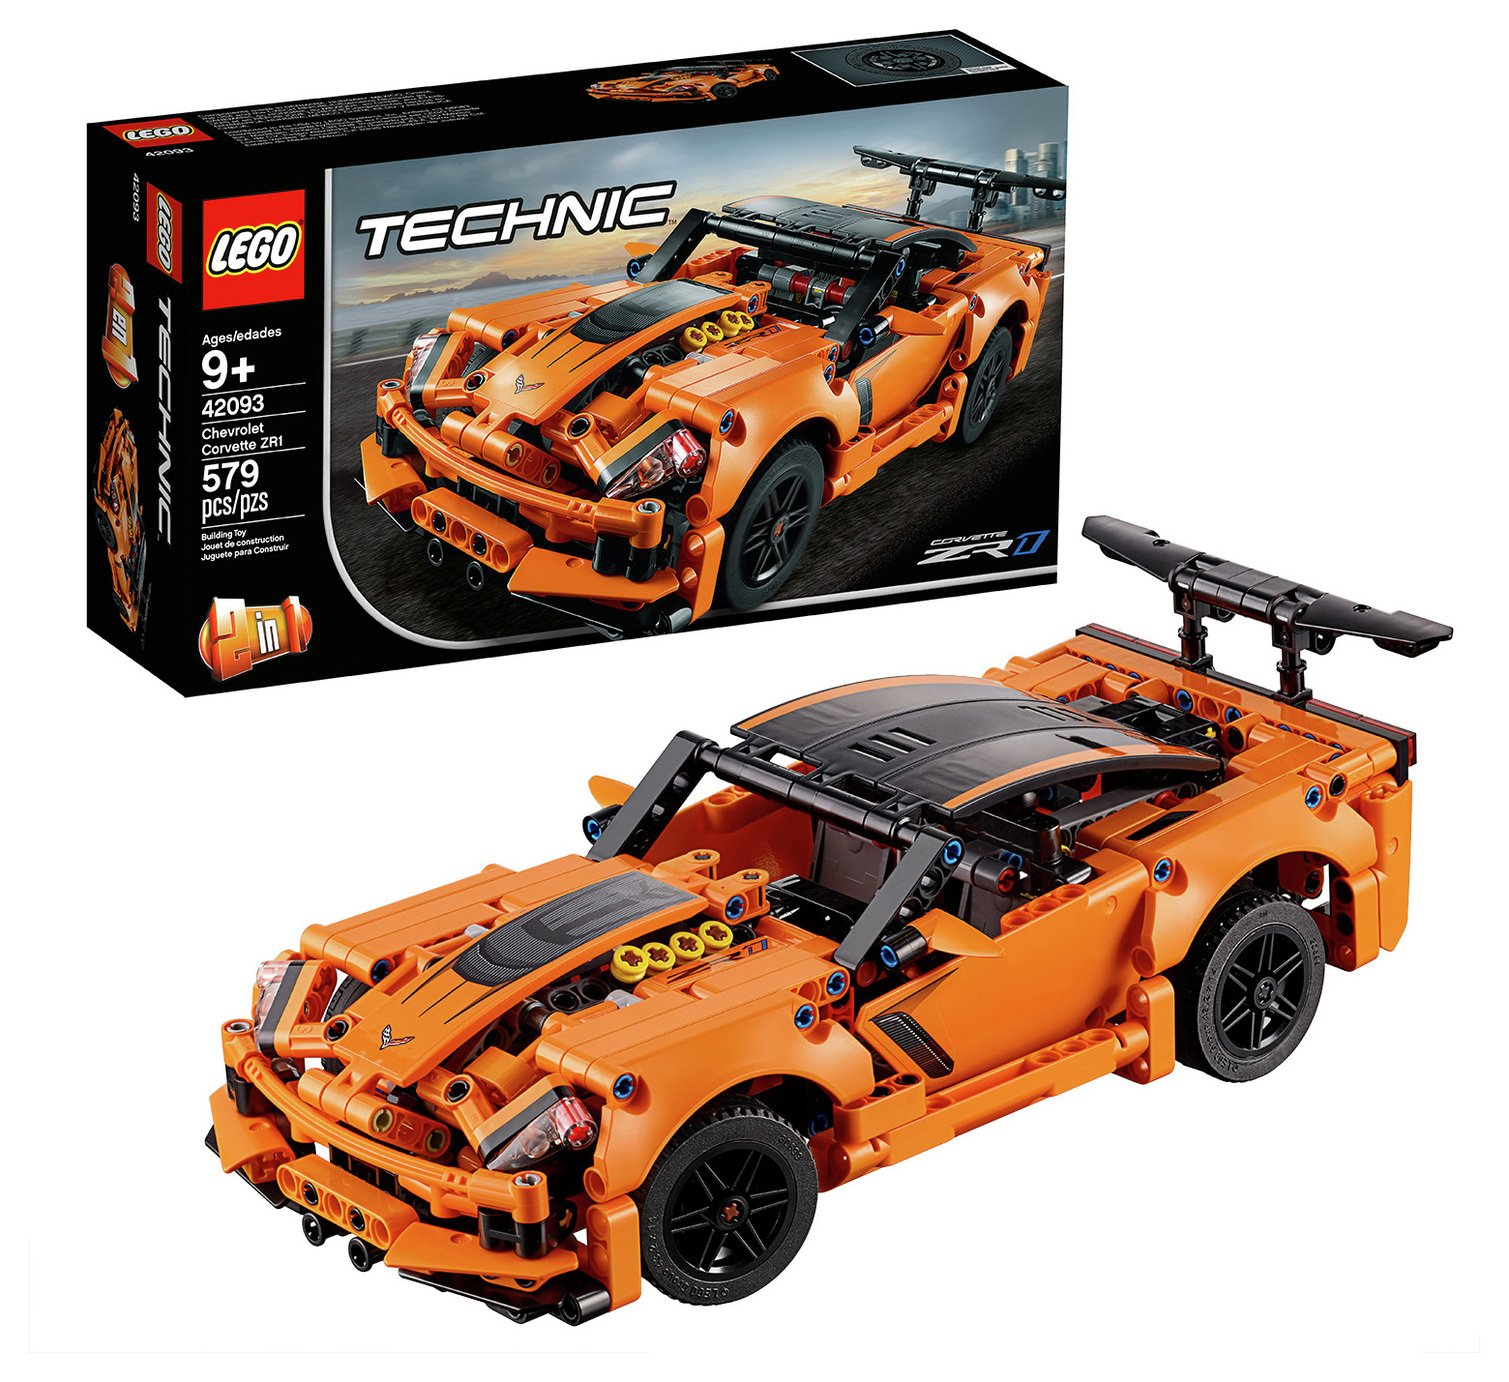 LEGO Technic Chevrolet Corvette ZR1 Car Replica - 42093